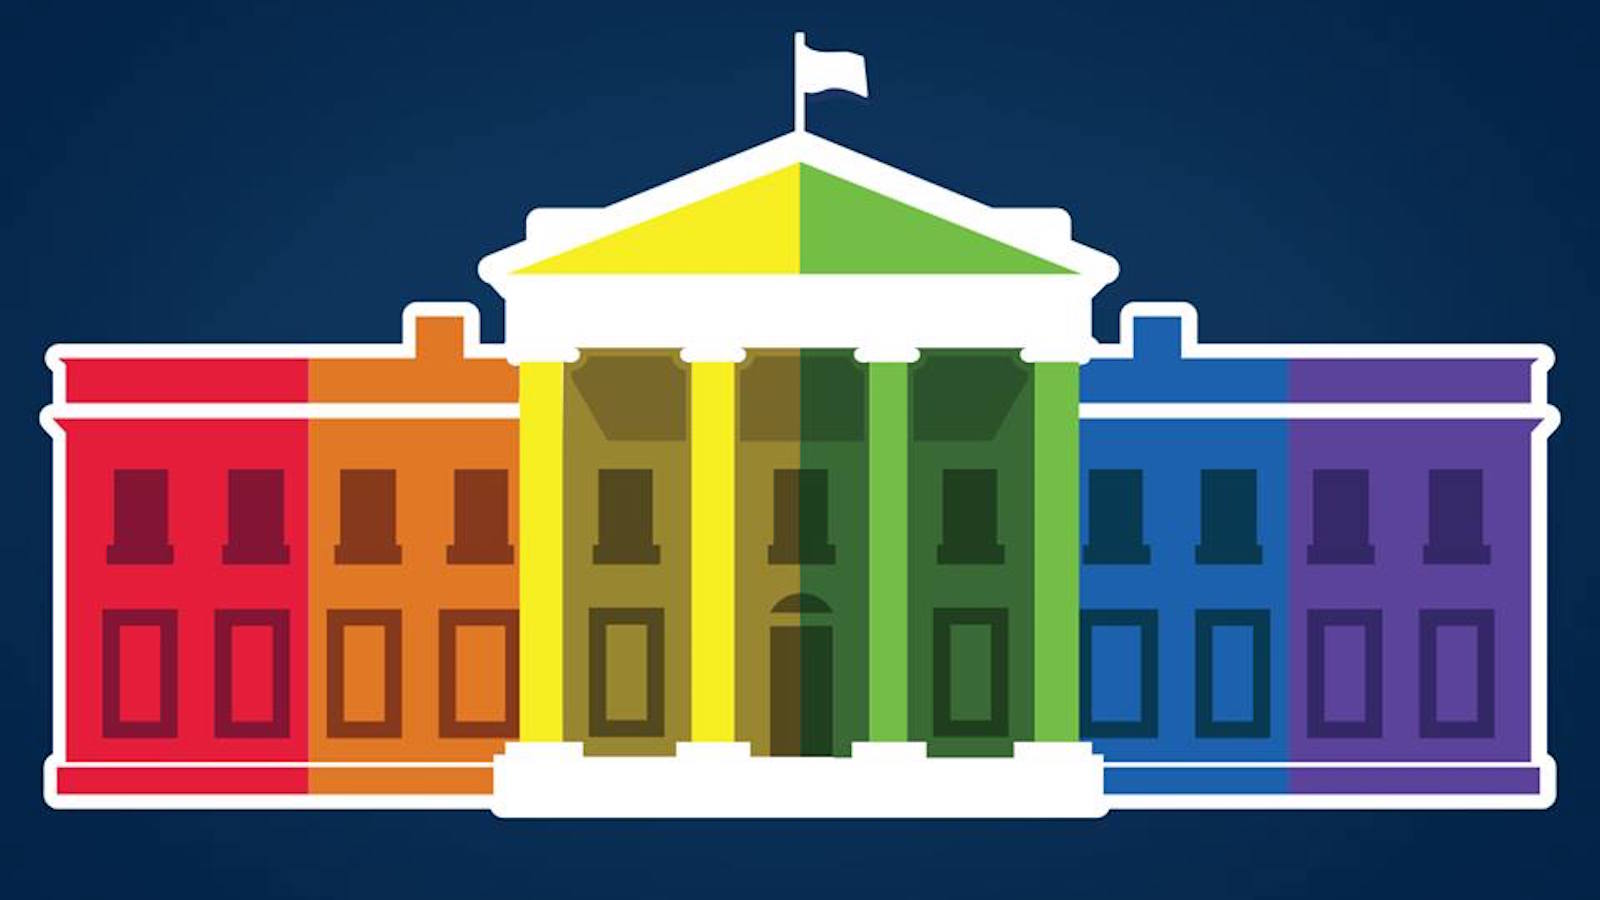 The White House turns rainbow in the new White House profile picture